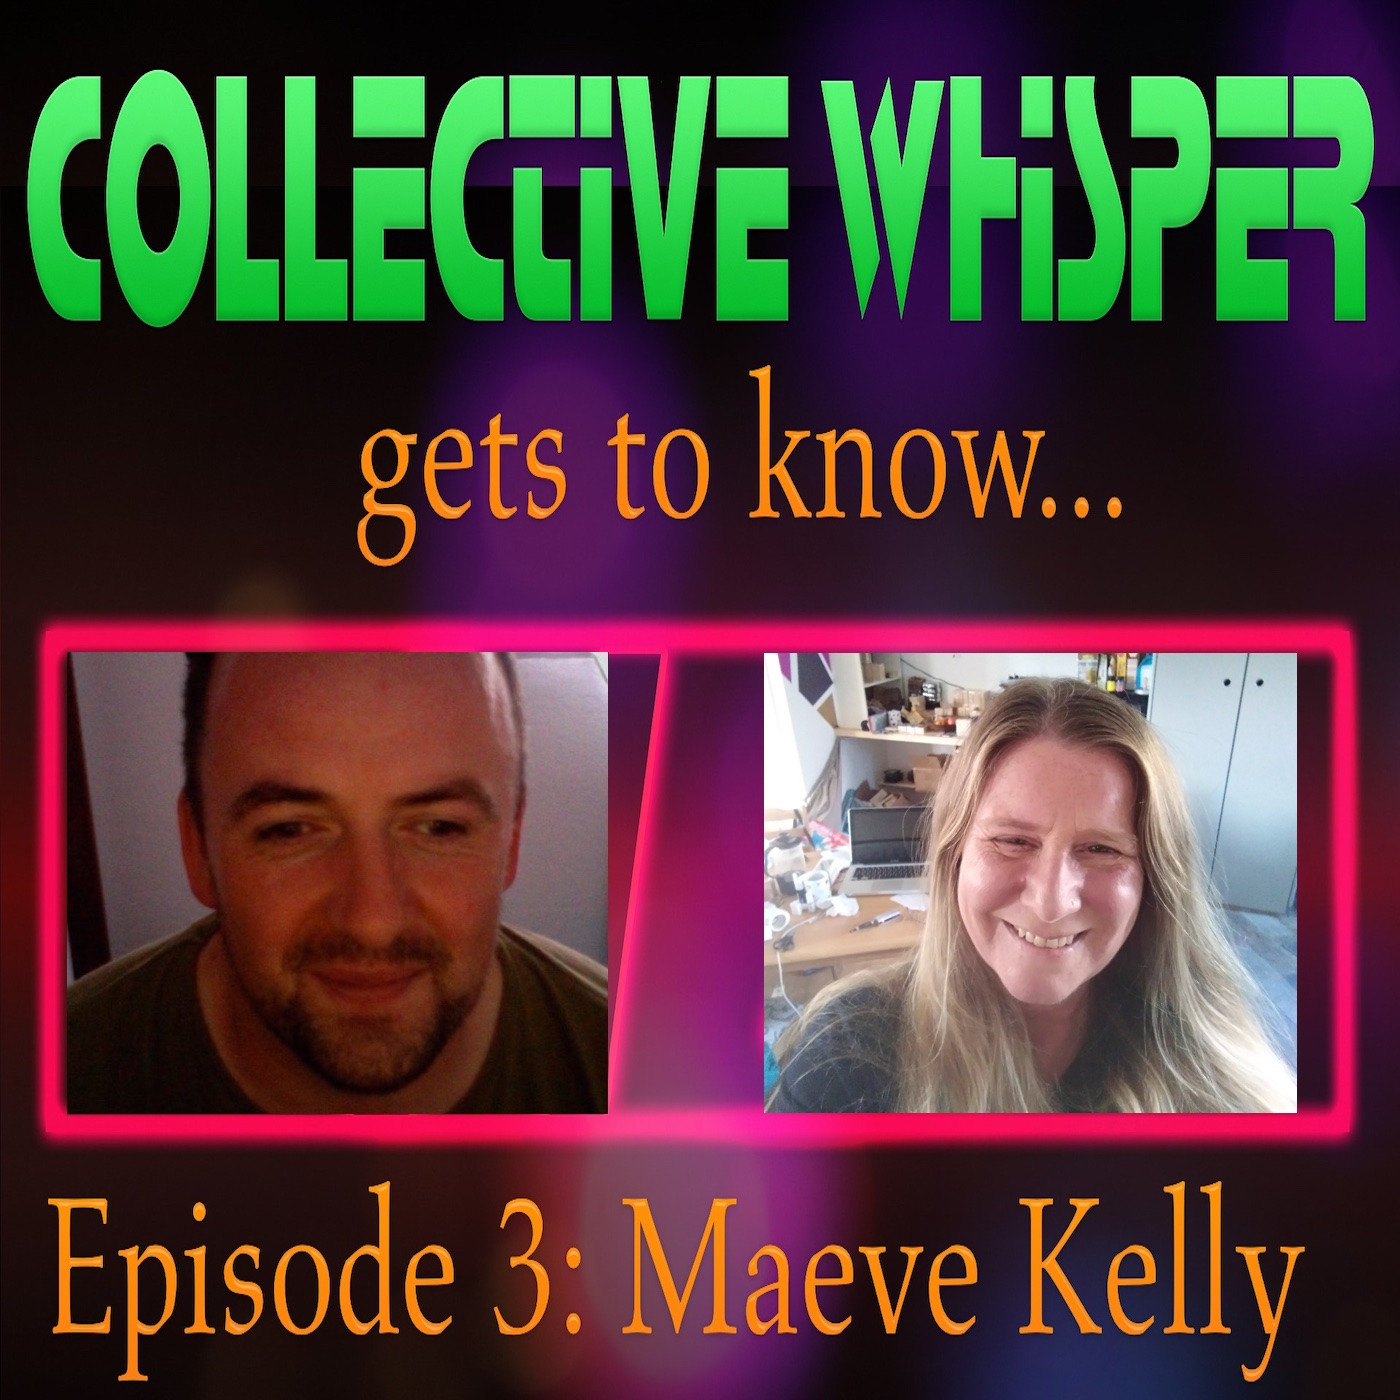 Collective Whisper gets to know.....Maeve Kelly